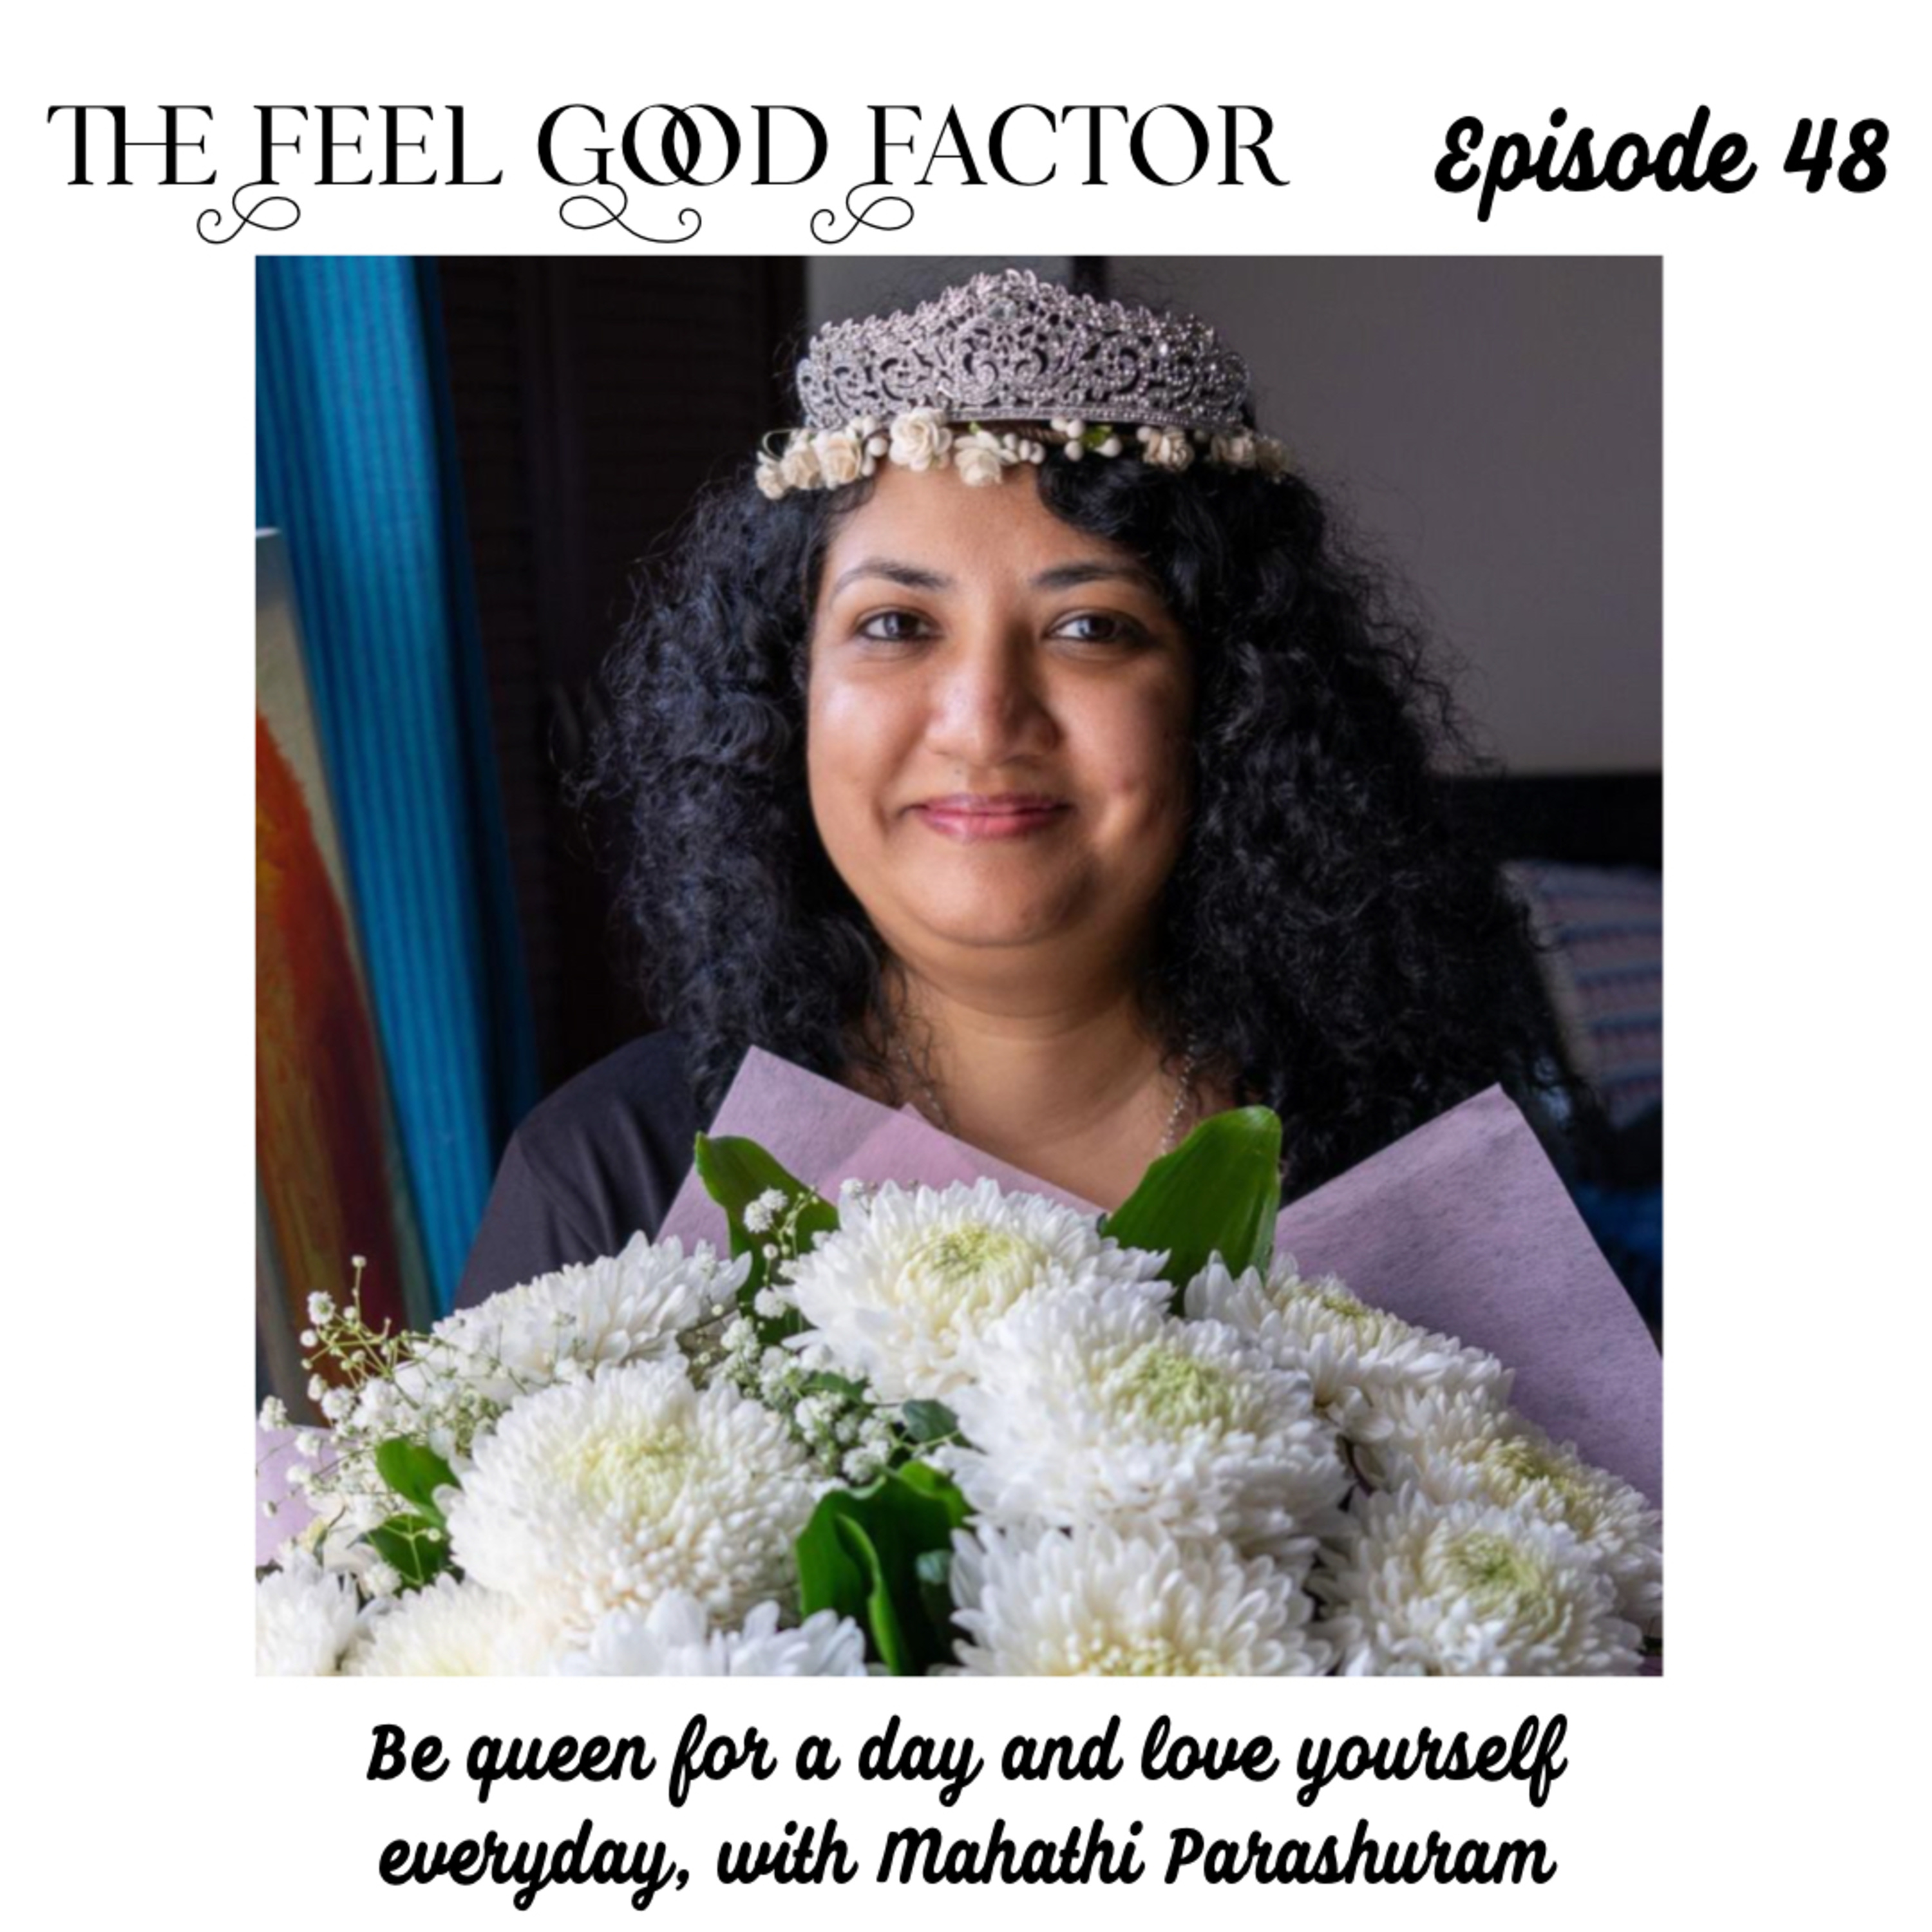 48: Be queen for a day and love yourself everyday, with Mahathi Parashuram